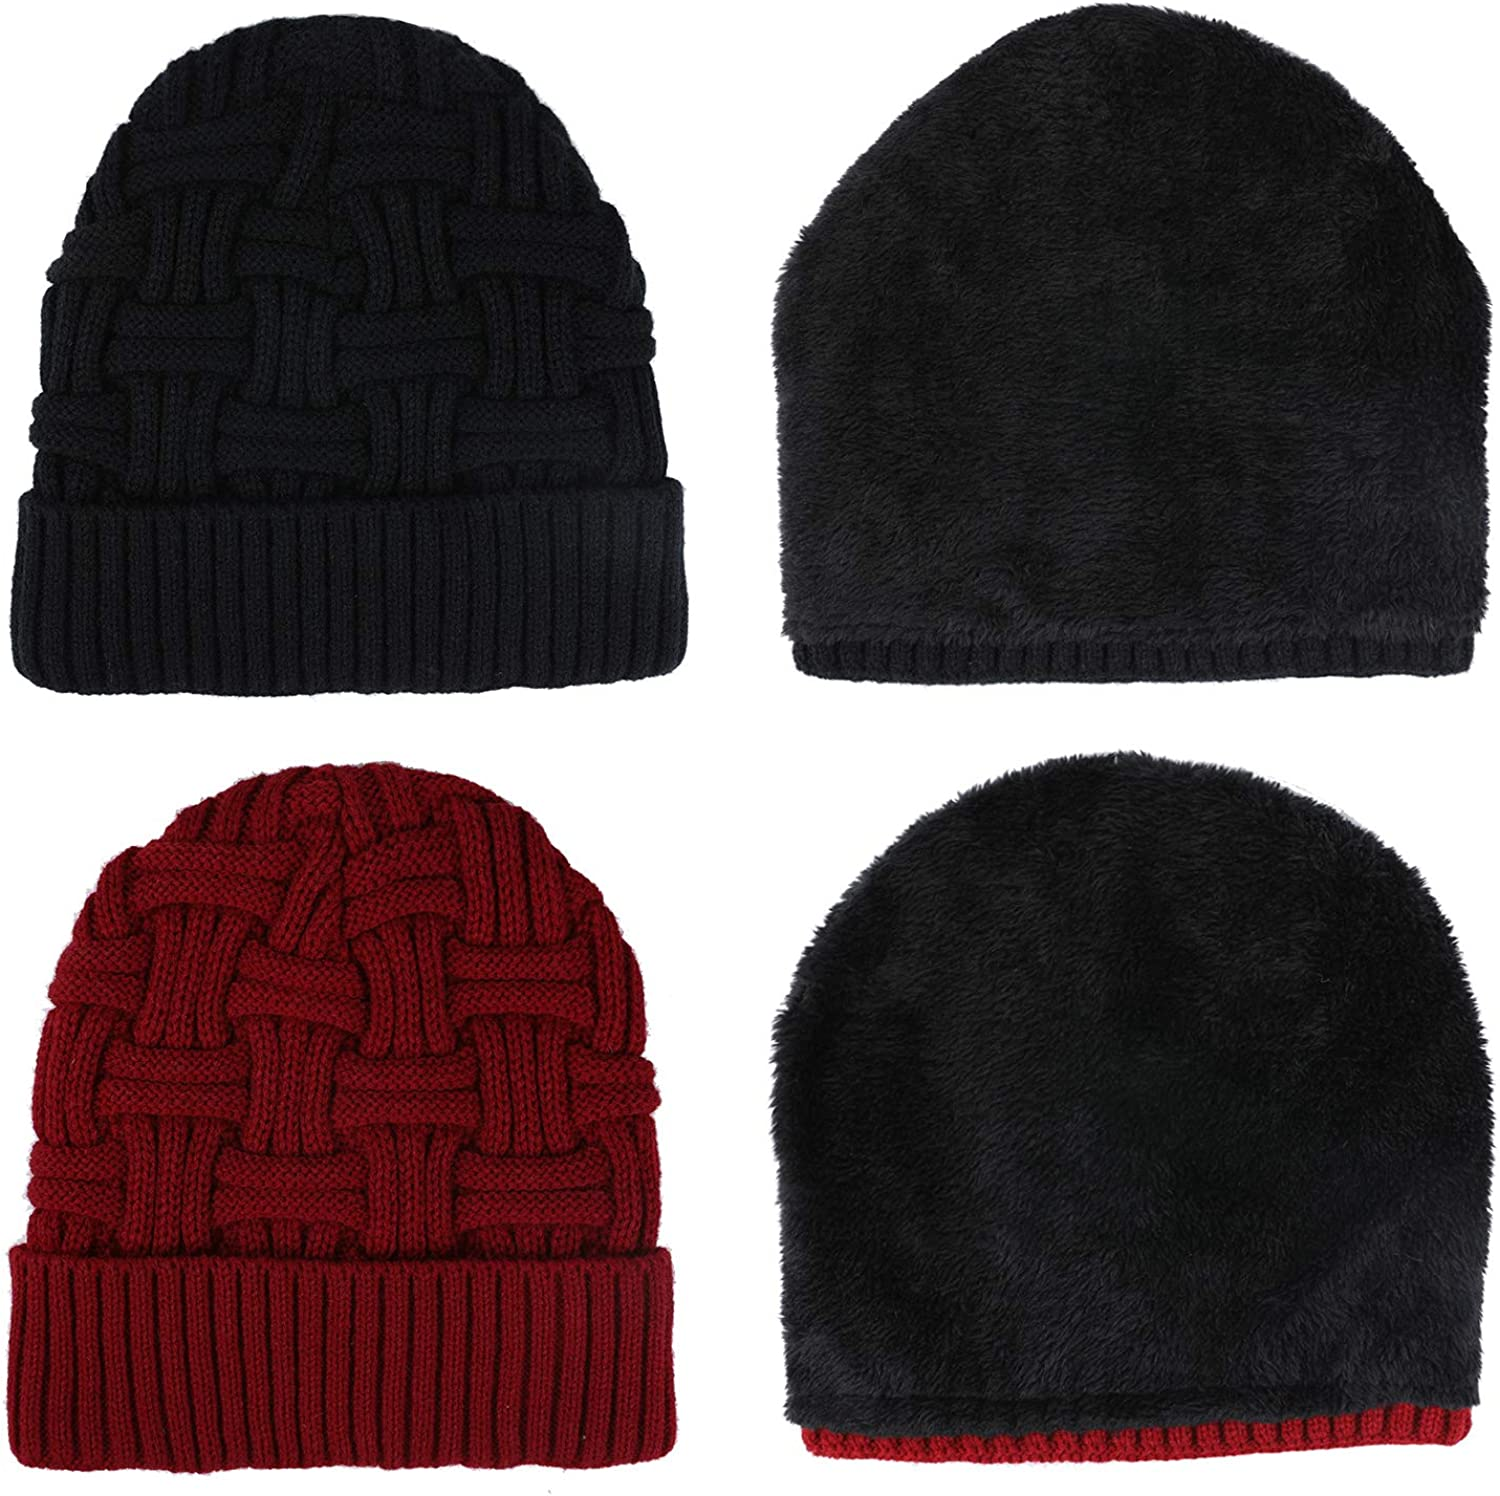 Zomme 2 Pack Mens Winter Hats Warm Knit Wool Thick Slouchy Beanie Hat Skull Cap